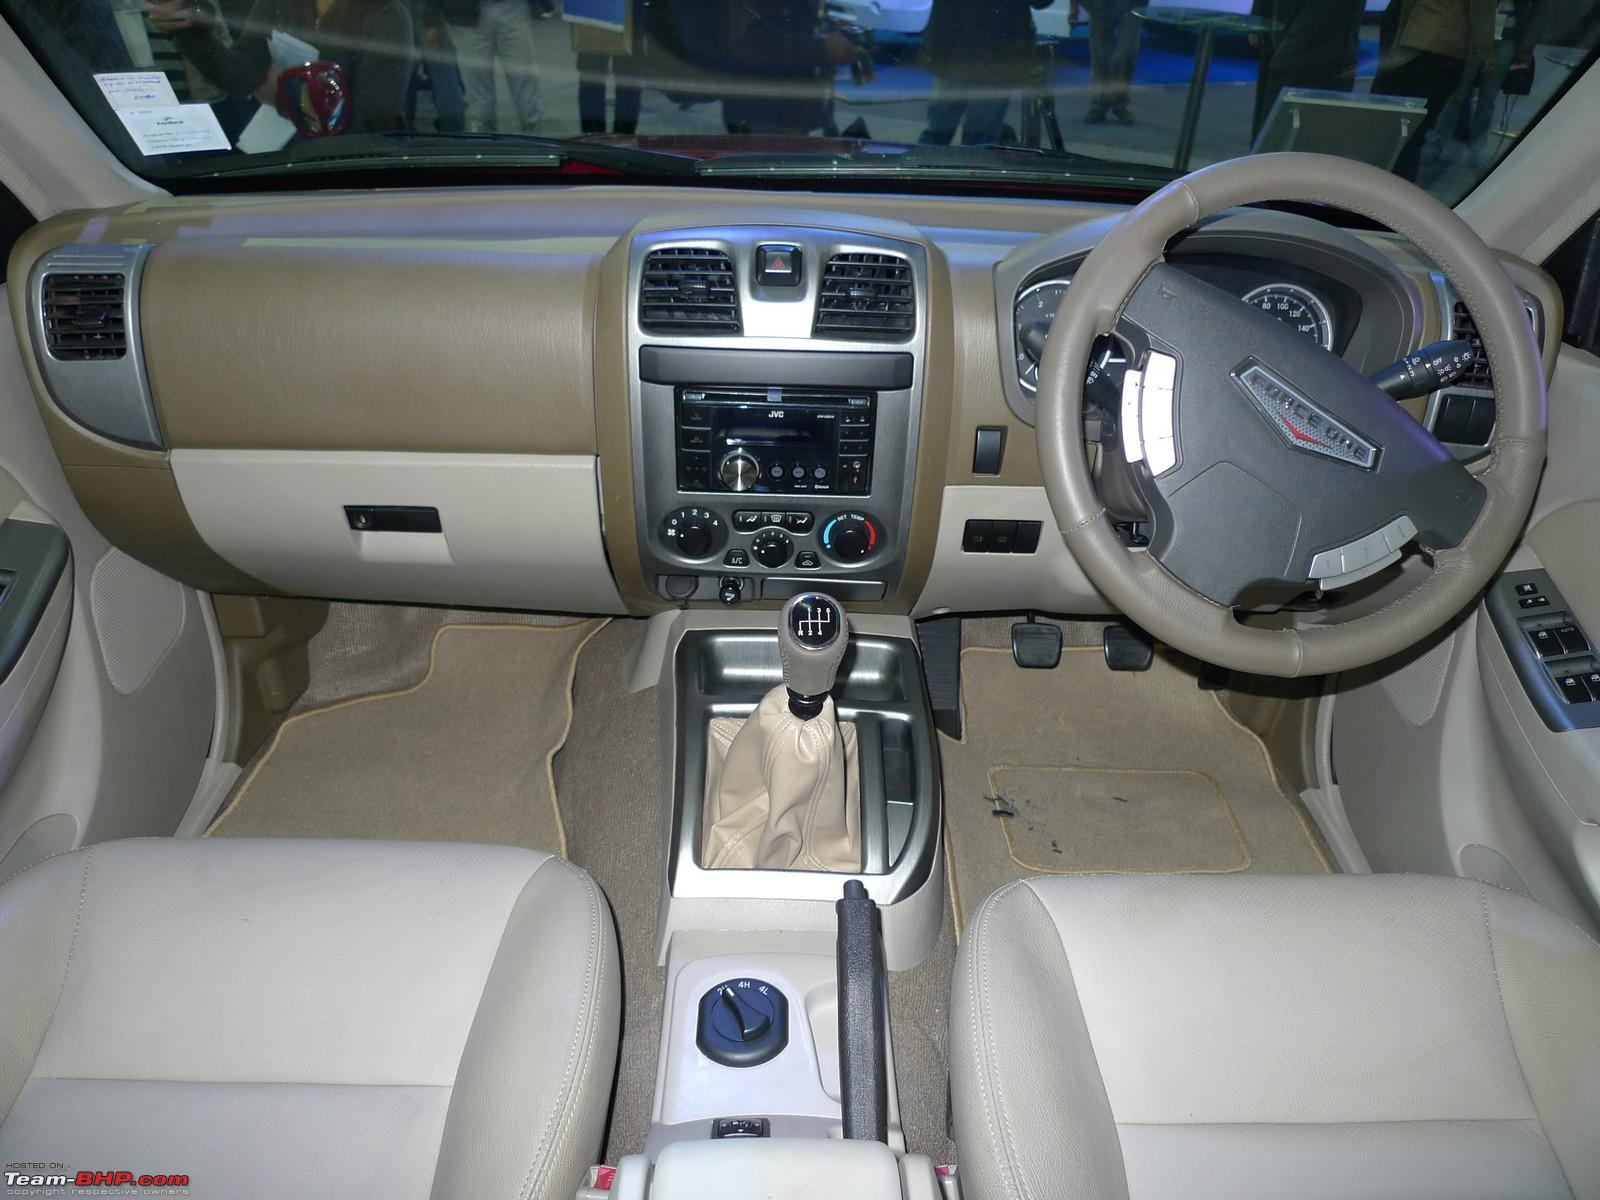 competitive price 86ea0 f159b Force Motors (including Force One 4x4)   Auto Expo 2012-force-1